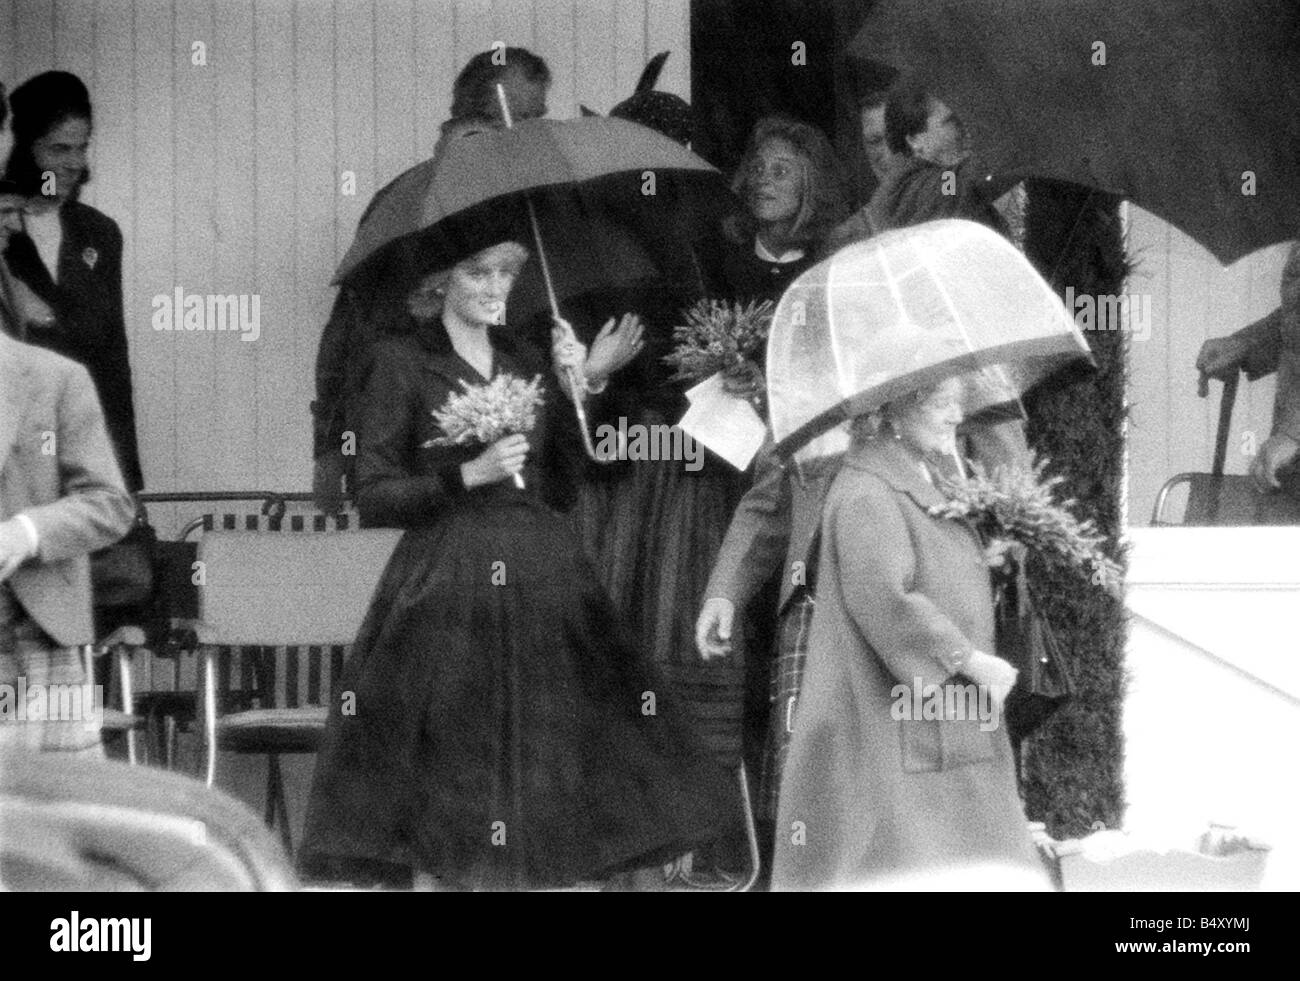 Princess Diana and The Queen Mum September 1987 Royalty at the Braemar for the Highland games with their brollies - Stock Image